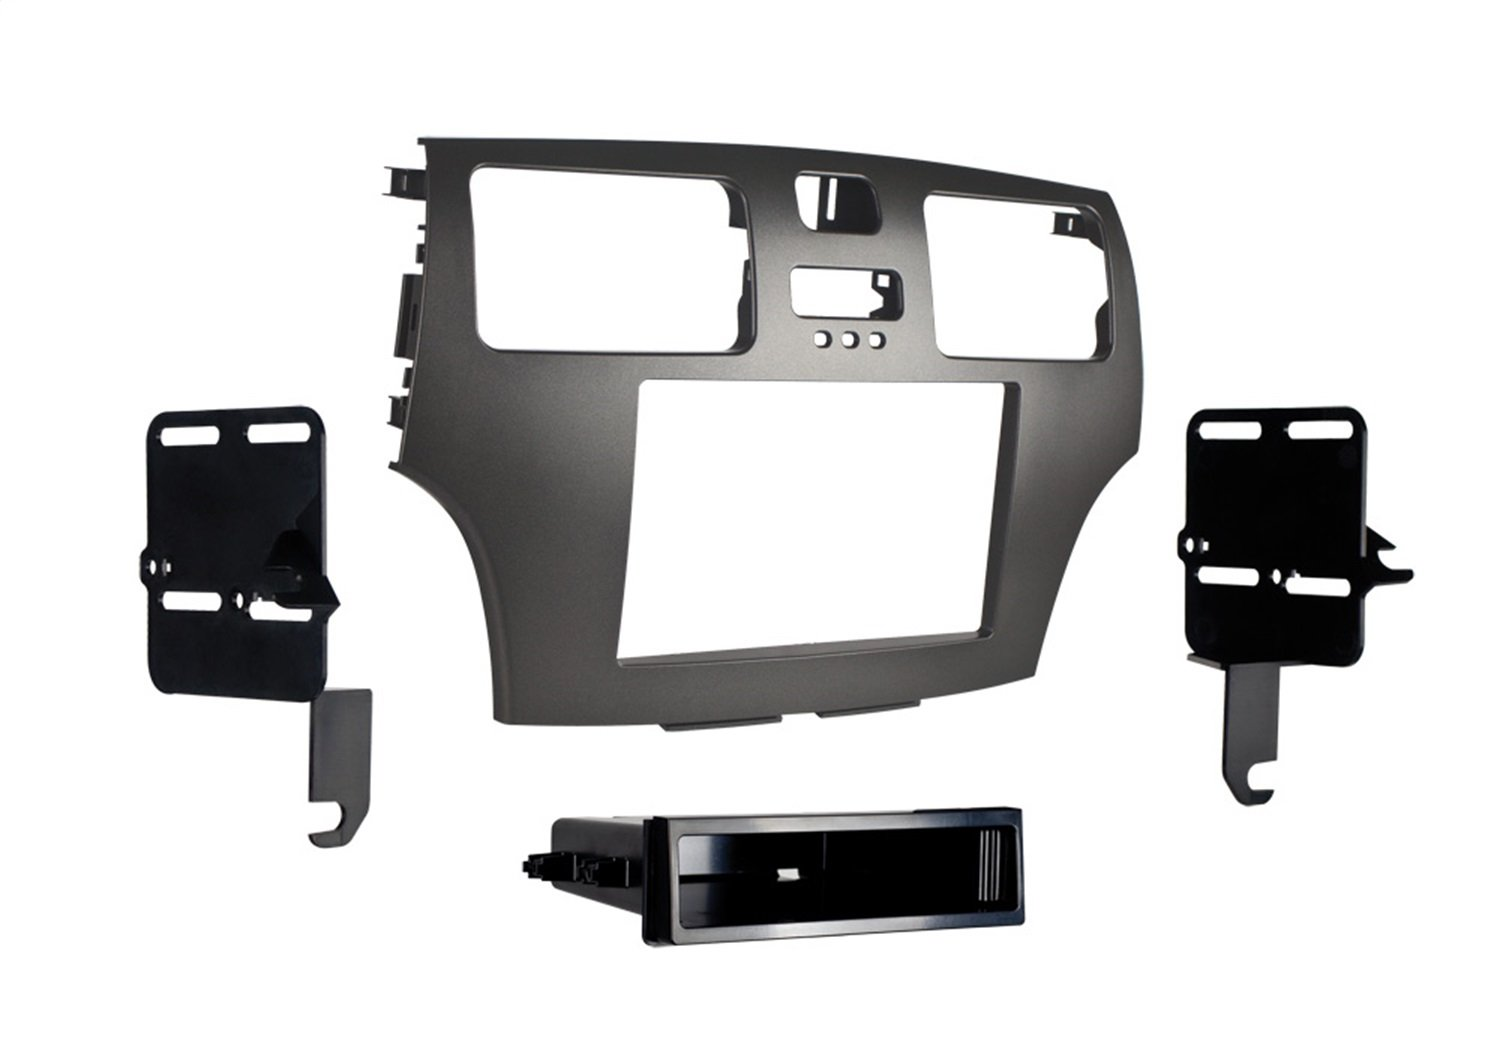 Amazon.com: Metra 99-8158G Single or Double DIN Installation Kit for  2002-2006 Lexus ES300 and ES330: Car Electronics